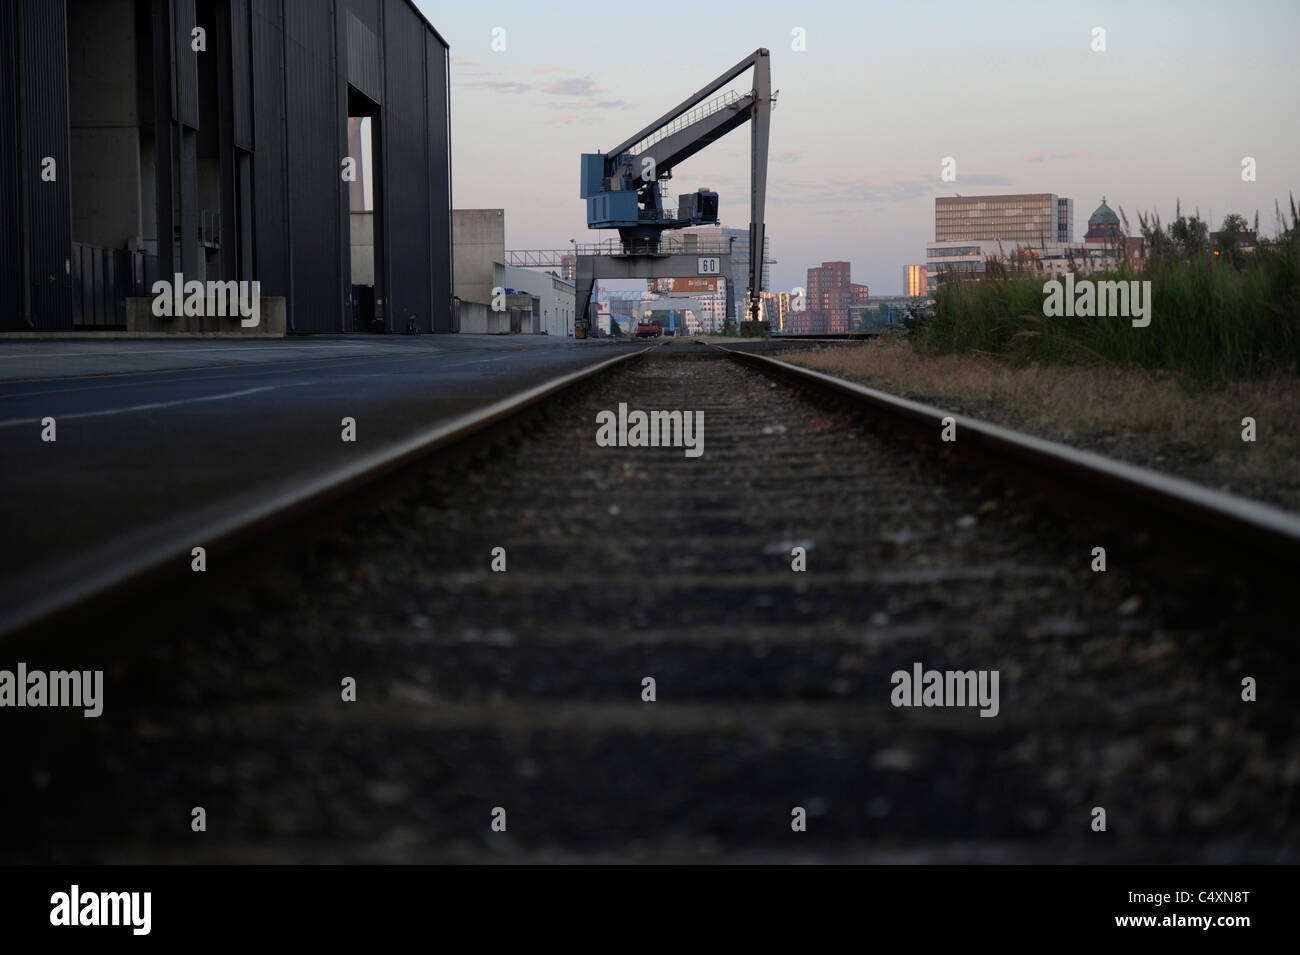 Background image rails - The Crane And Rails In The Background In The Harbour Arera In Duesseldorf Germany